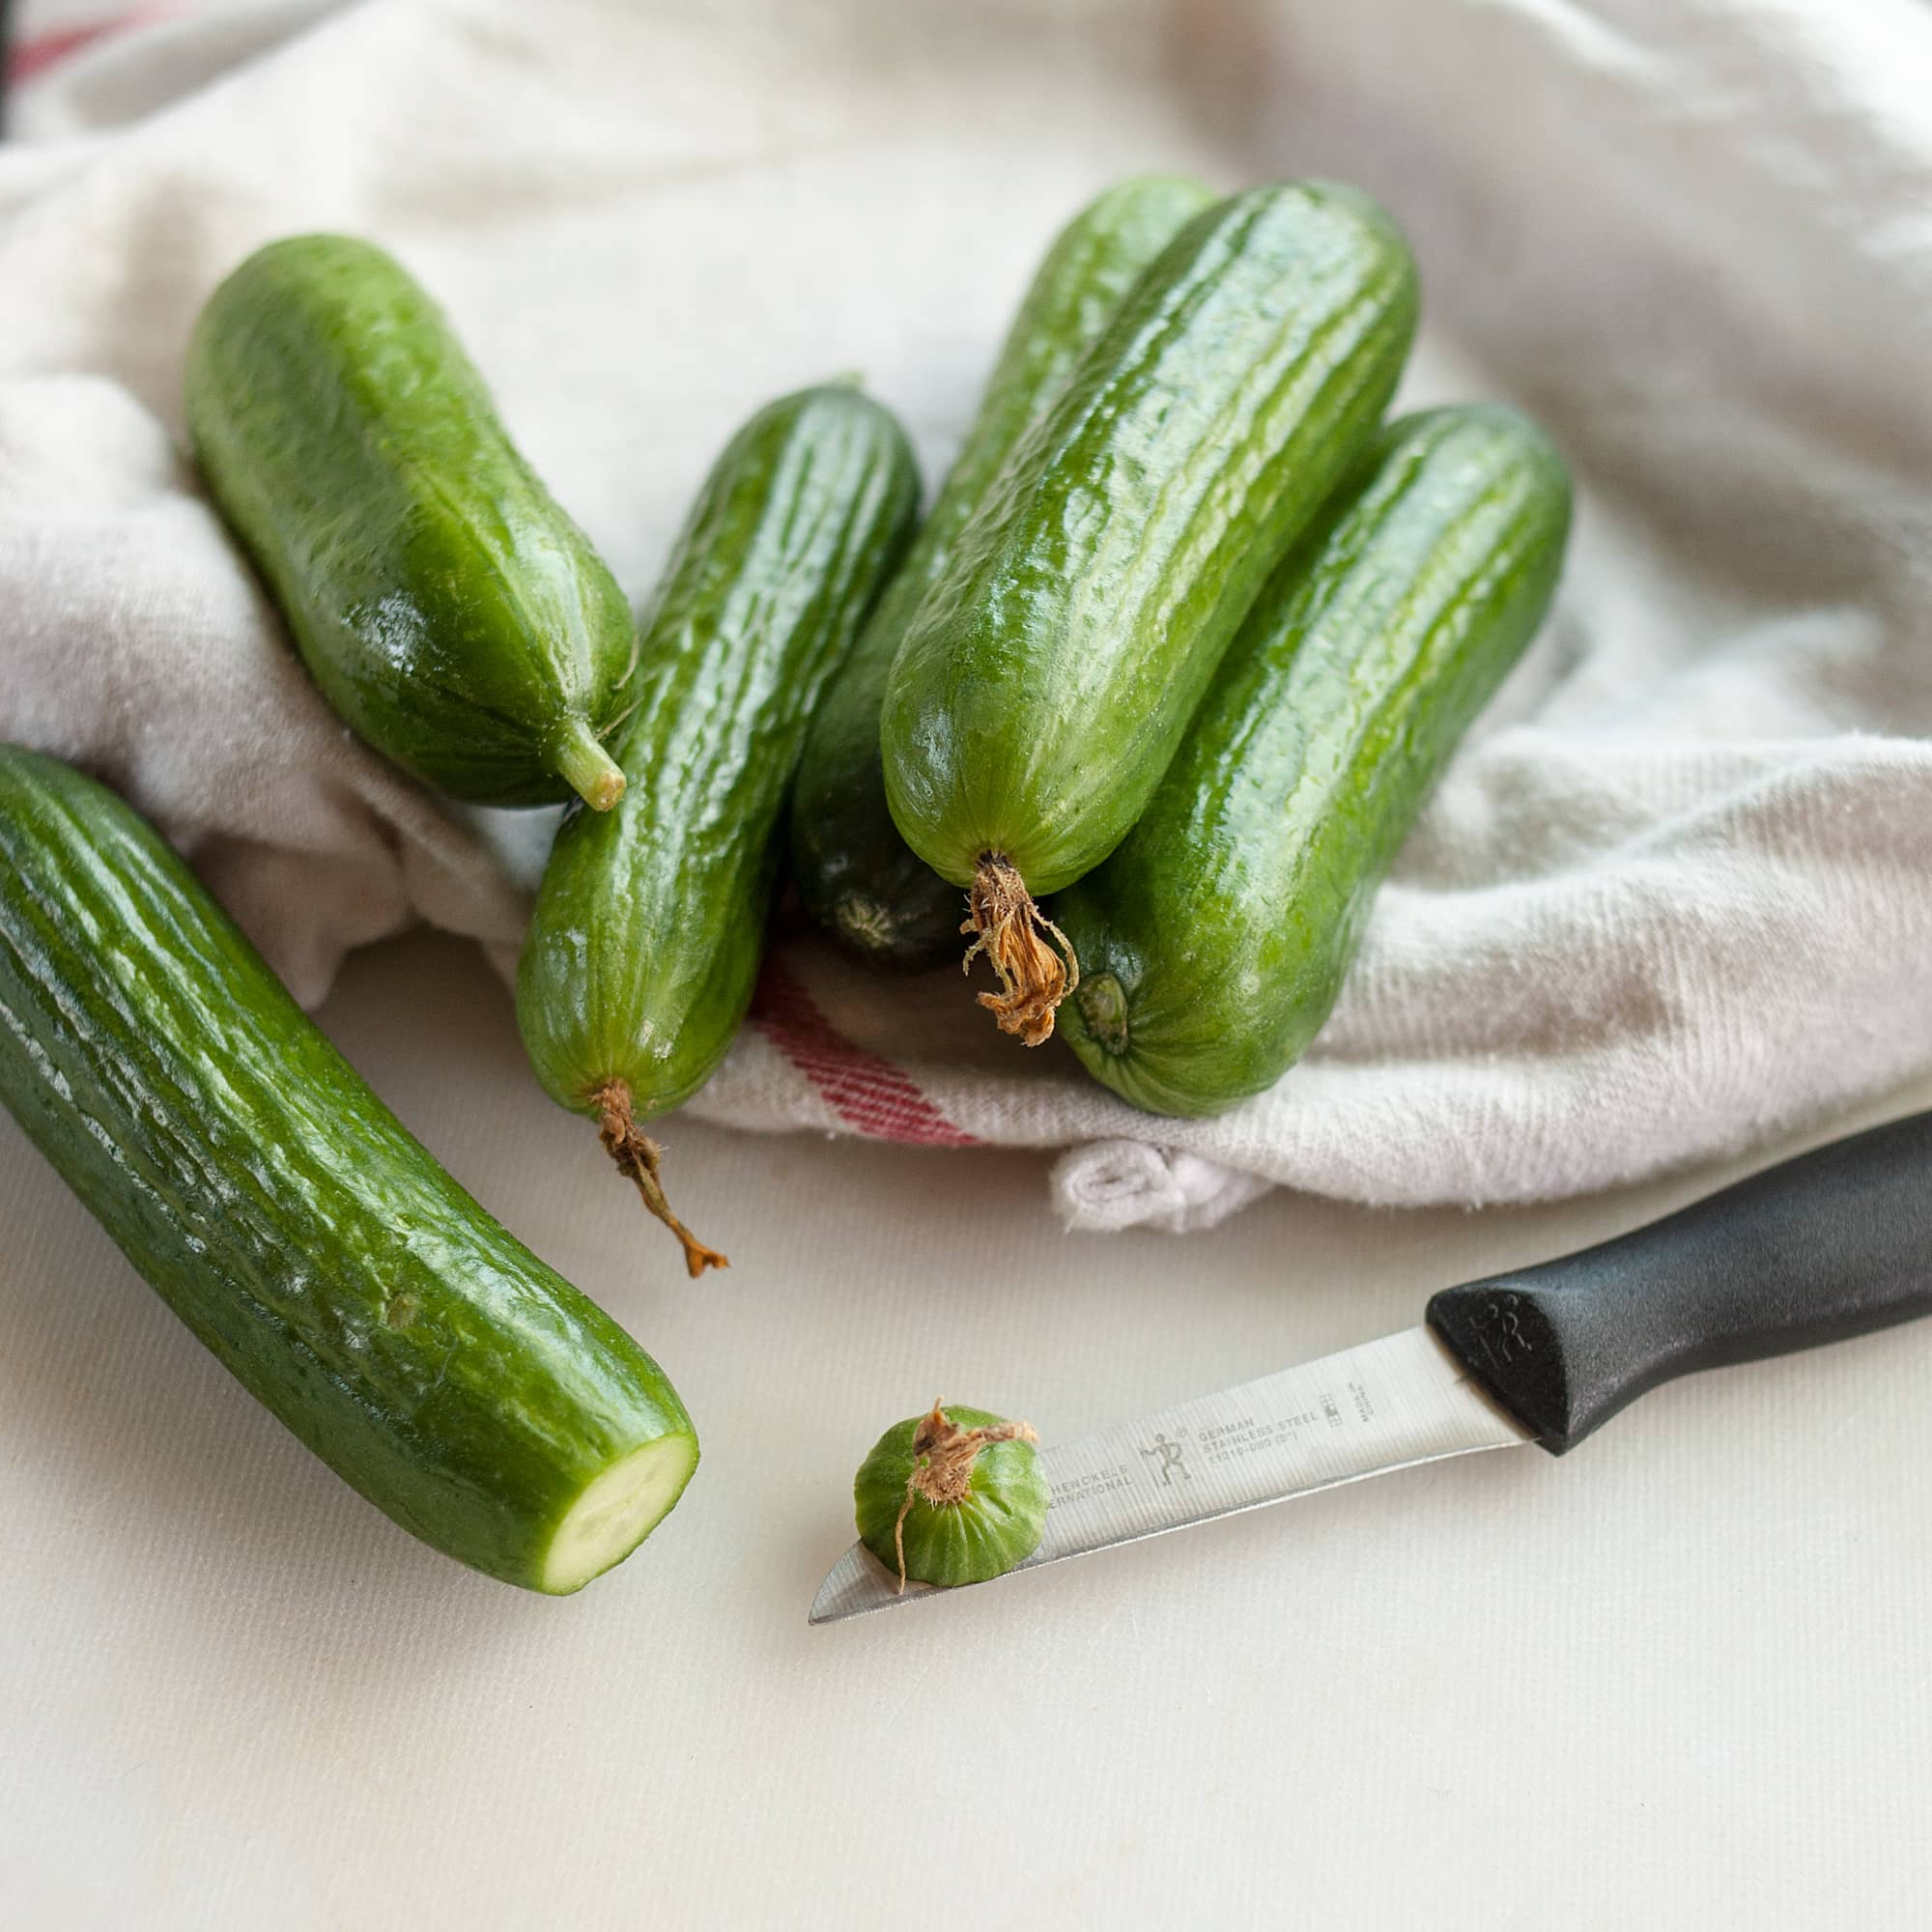 How To Make Dill Pickles: gallery image 2